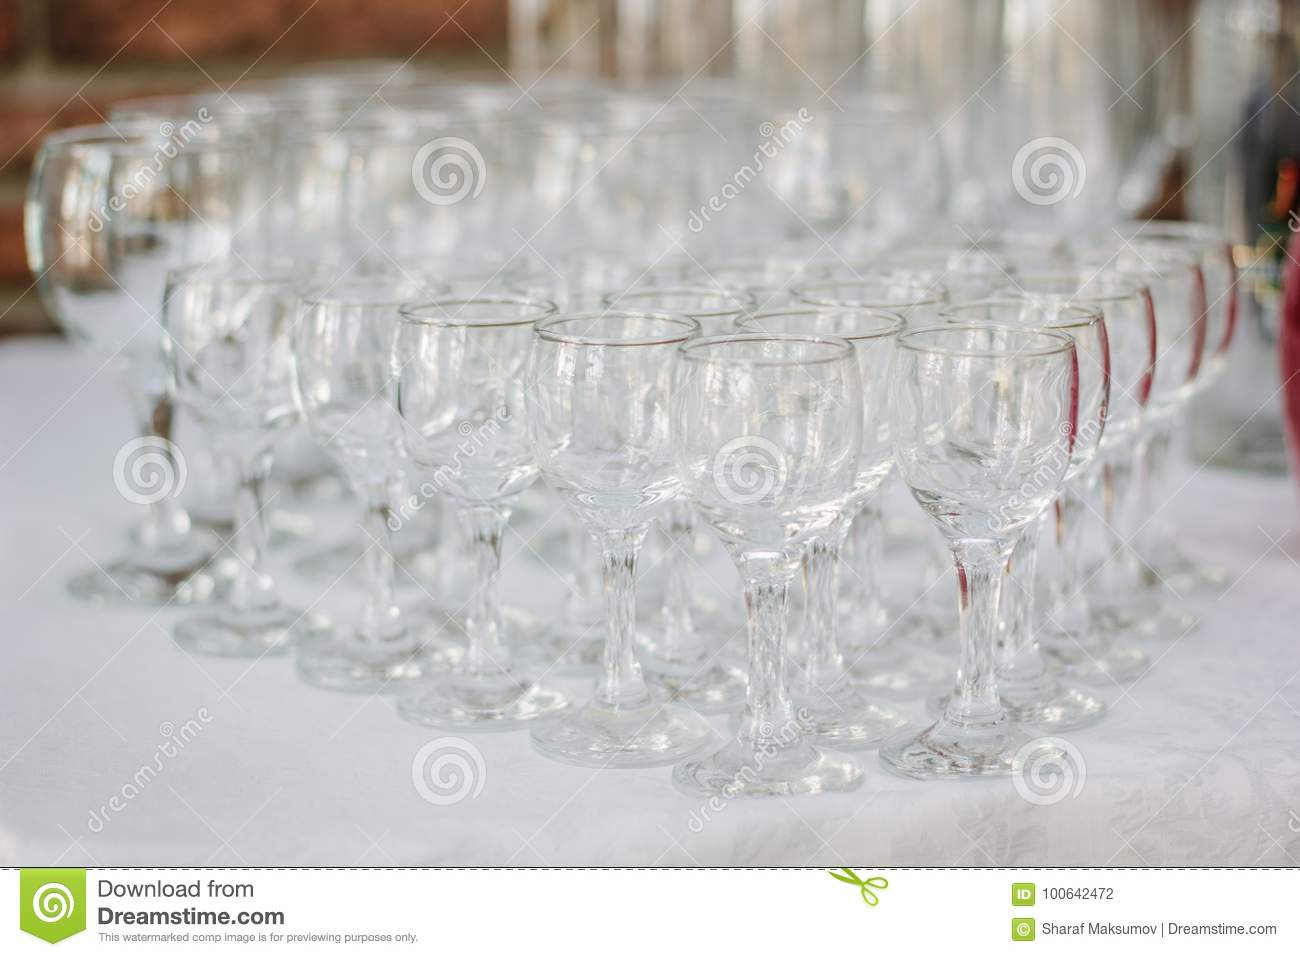 Row of glass on catering event on table.